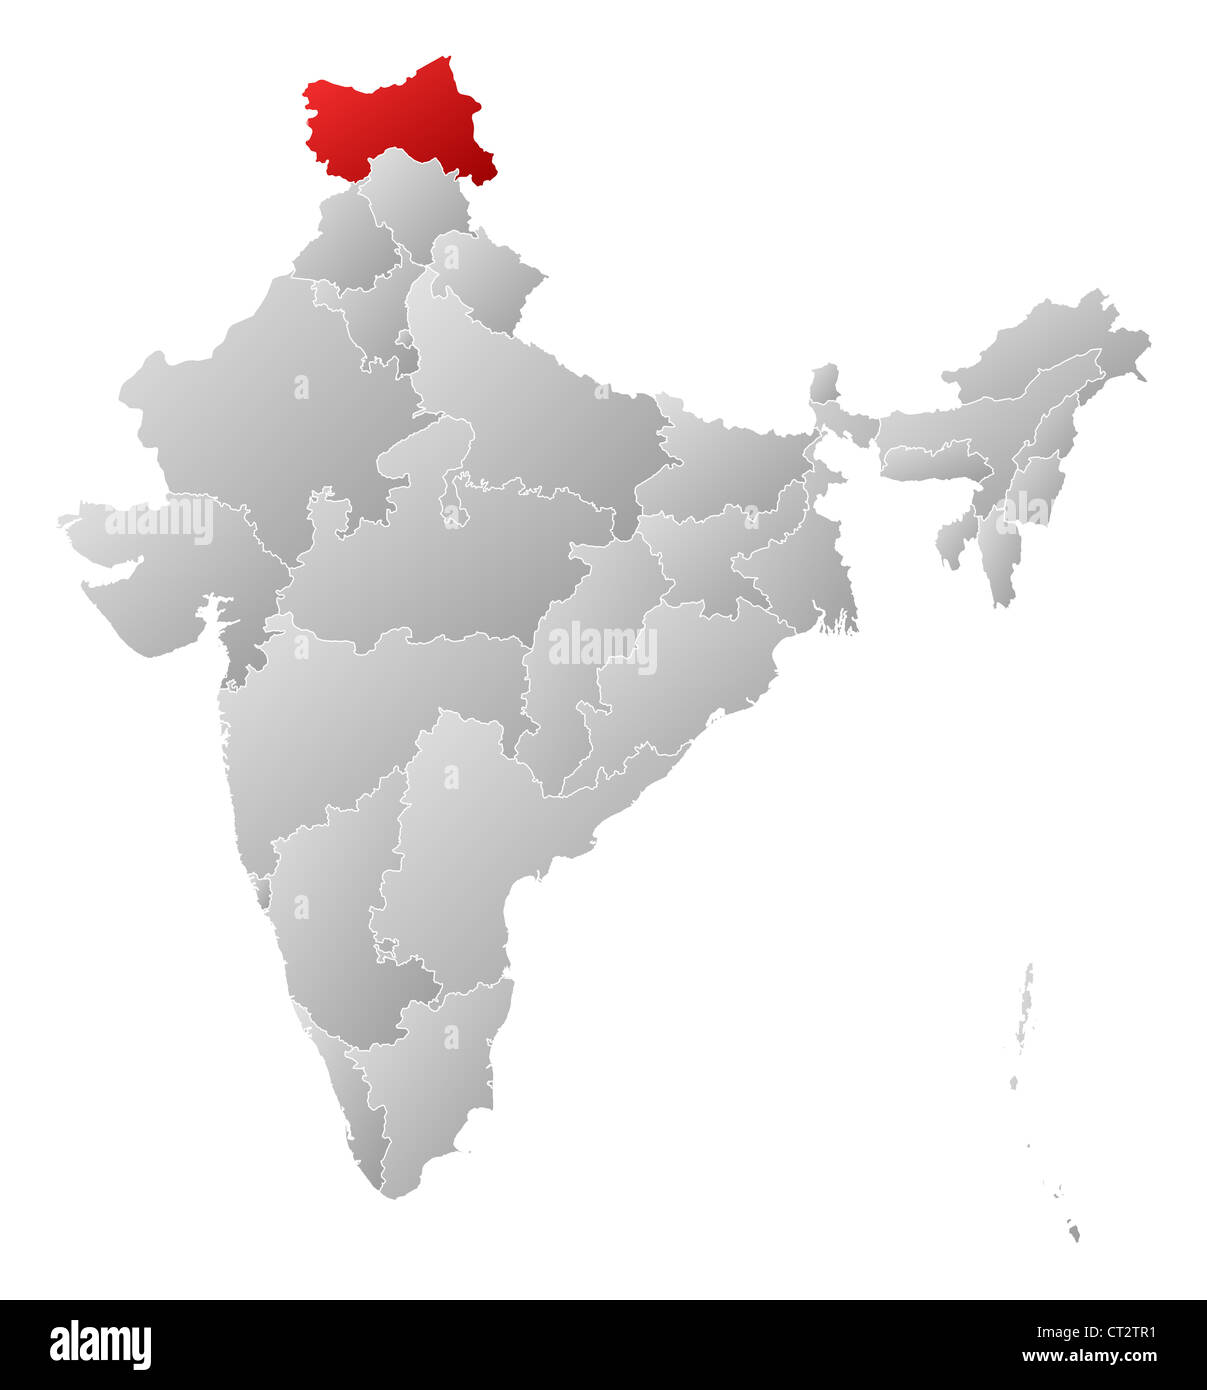 Kashmir On World Map.Political Map Of India With The Several States Where Jammu And Stock